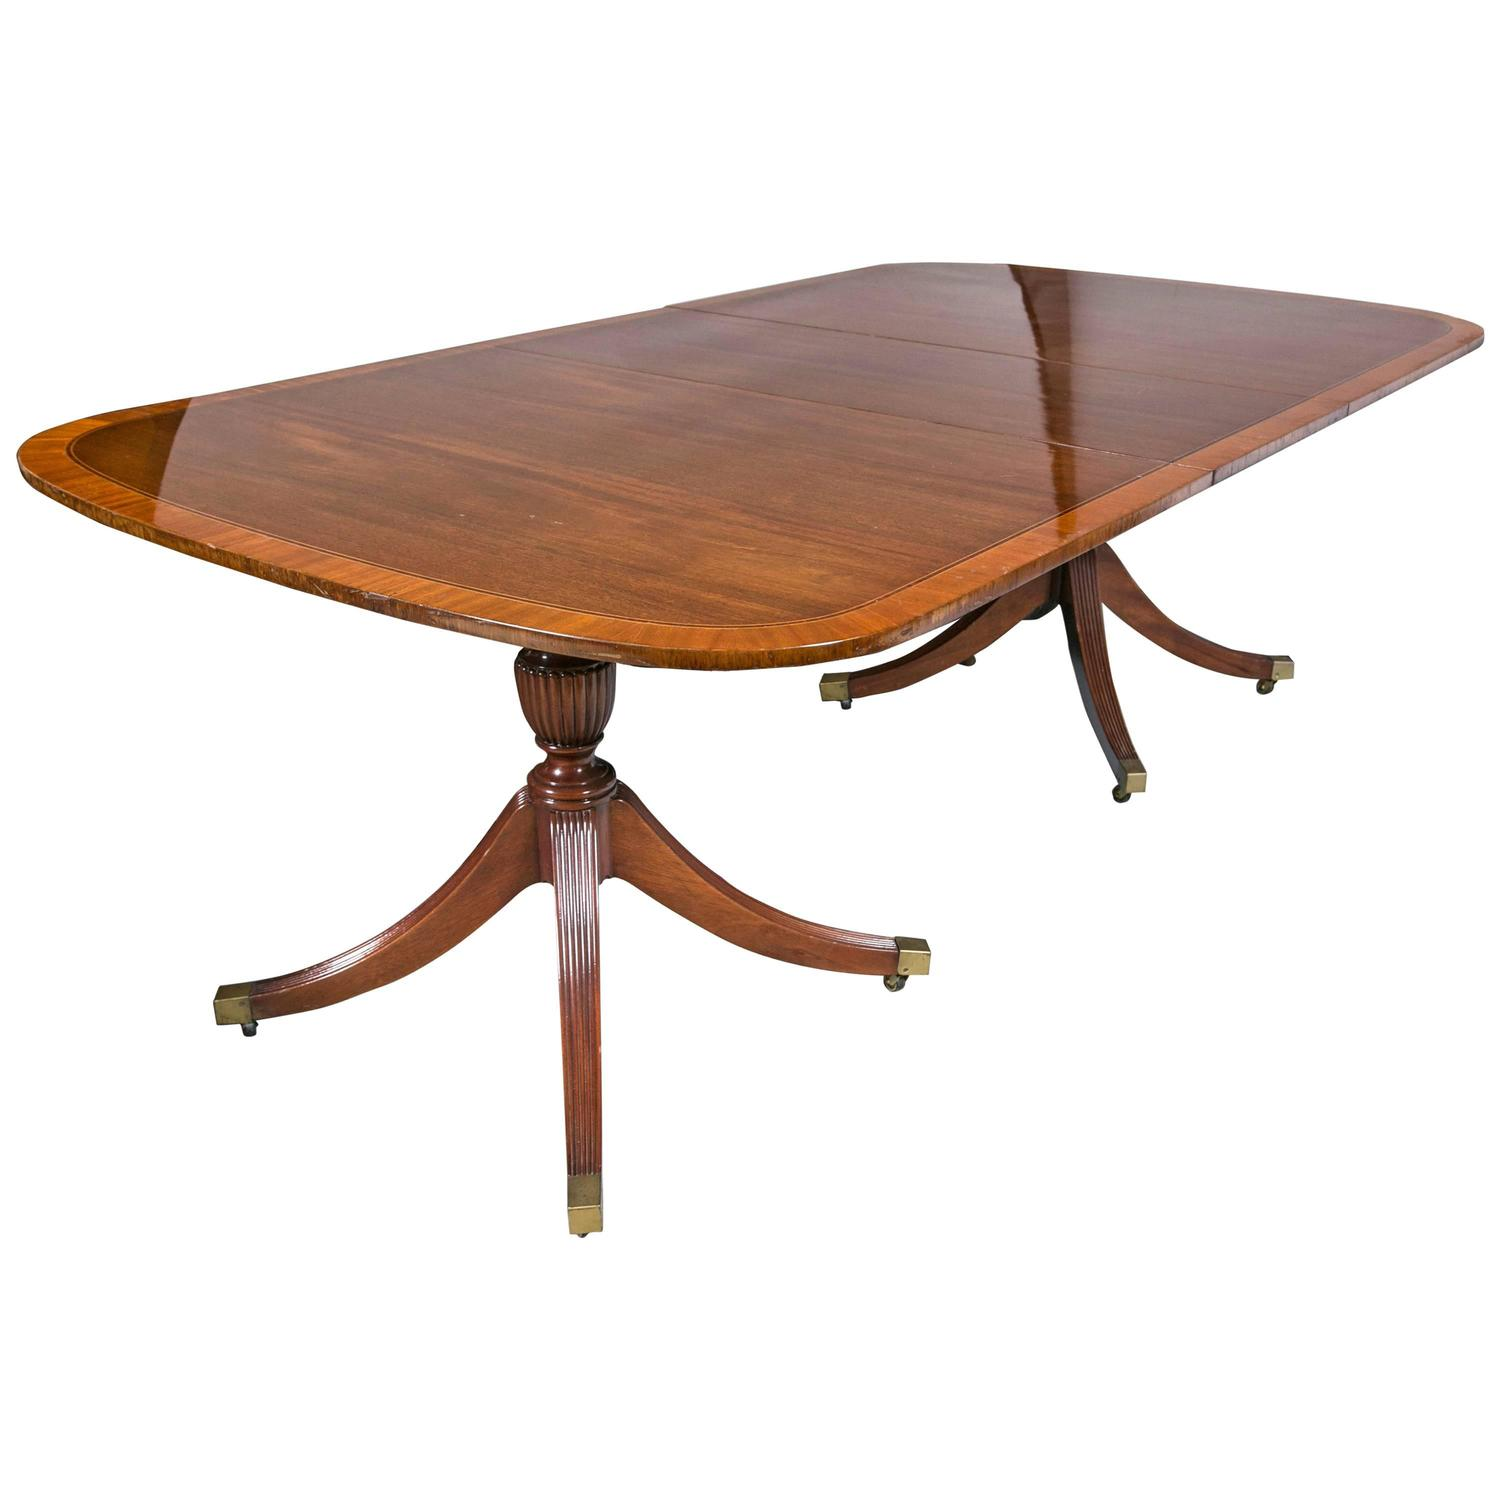 Rectangle Drop Leaf Table Images 35 Antique Drop Leaf  : 3387973z from favefaves.com size 1500 x 1500 jpeg 73kB